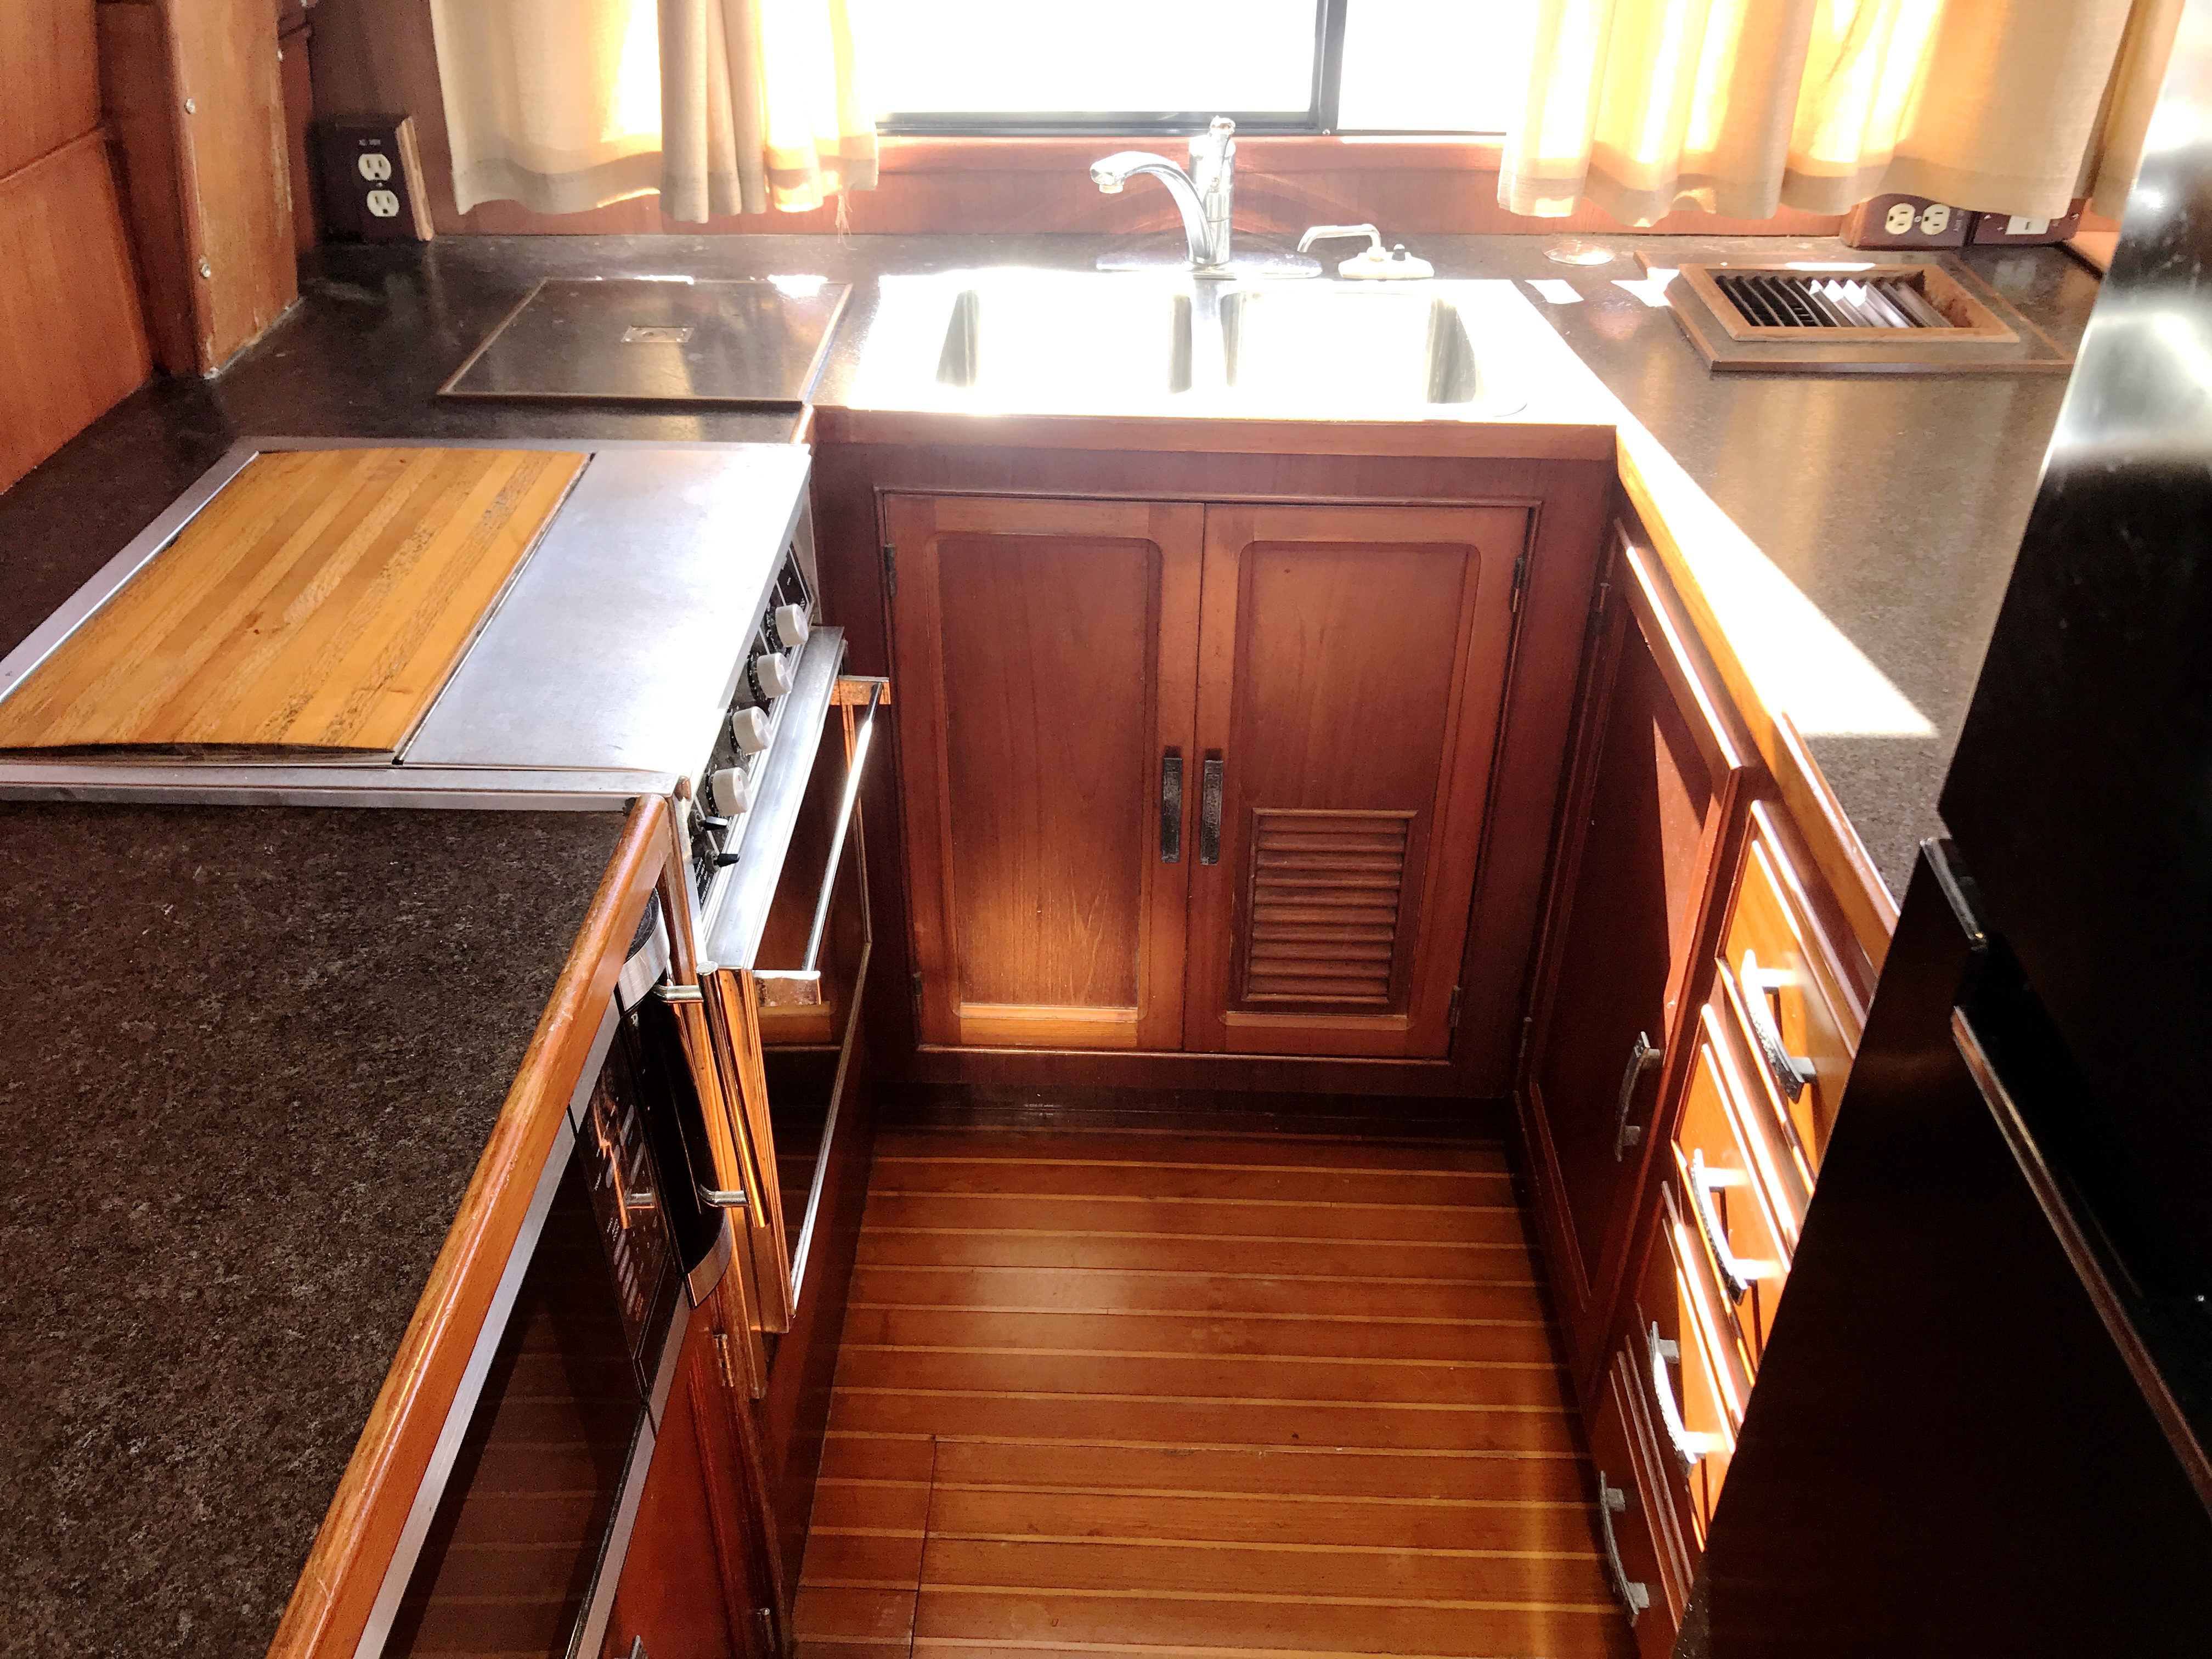 Sea Ranger SUNDECK - full appointed galley - lots of light and counter space